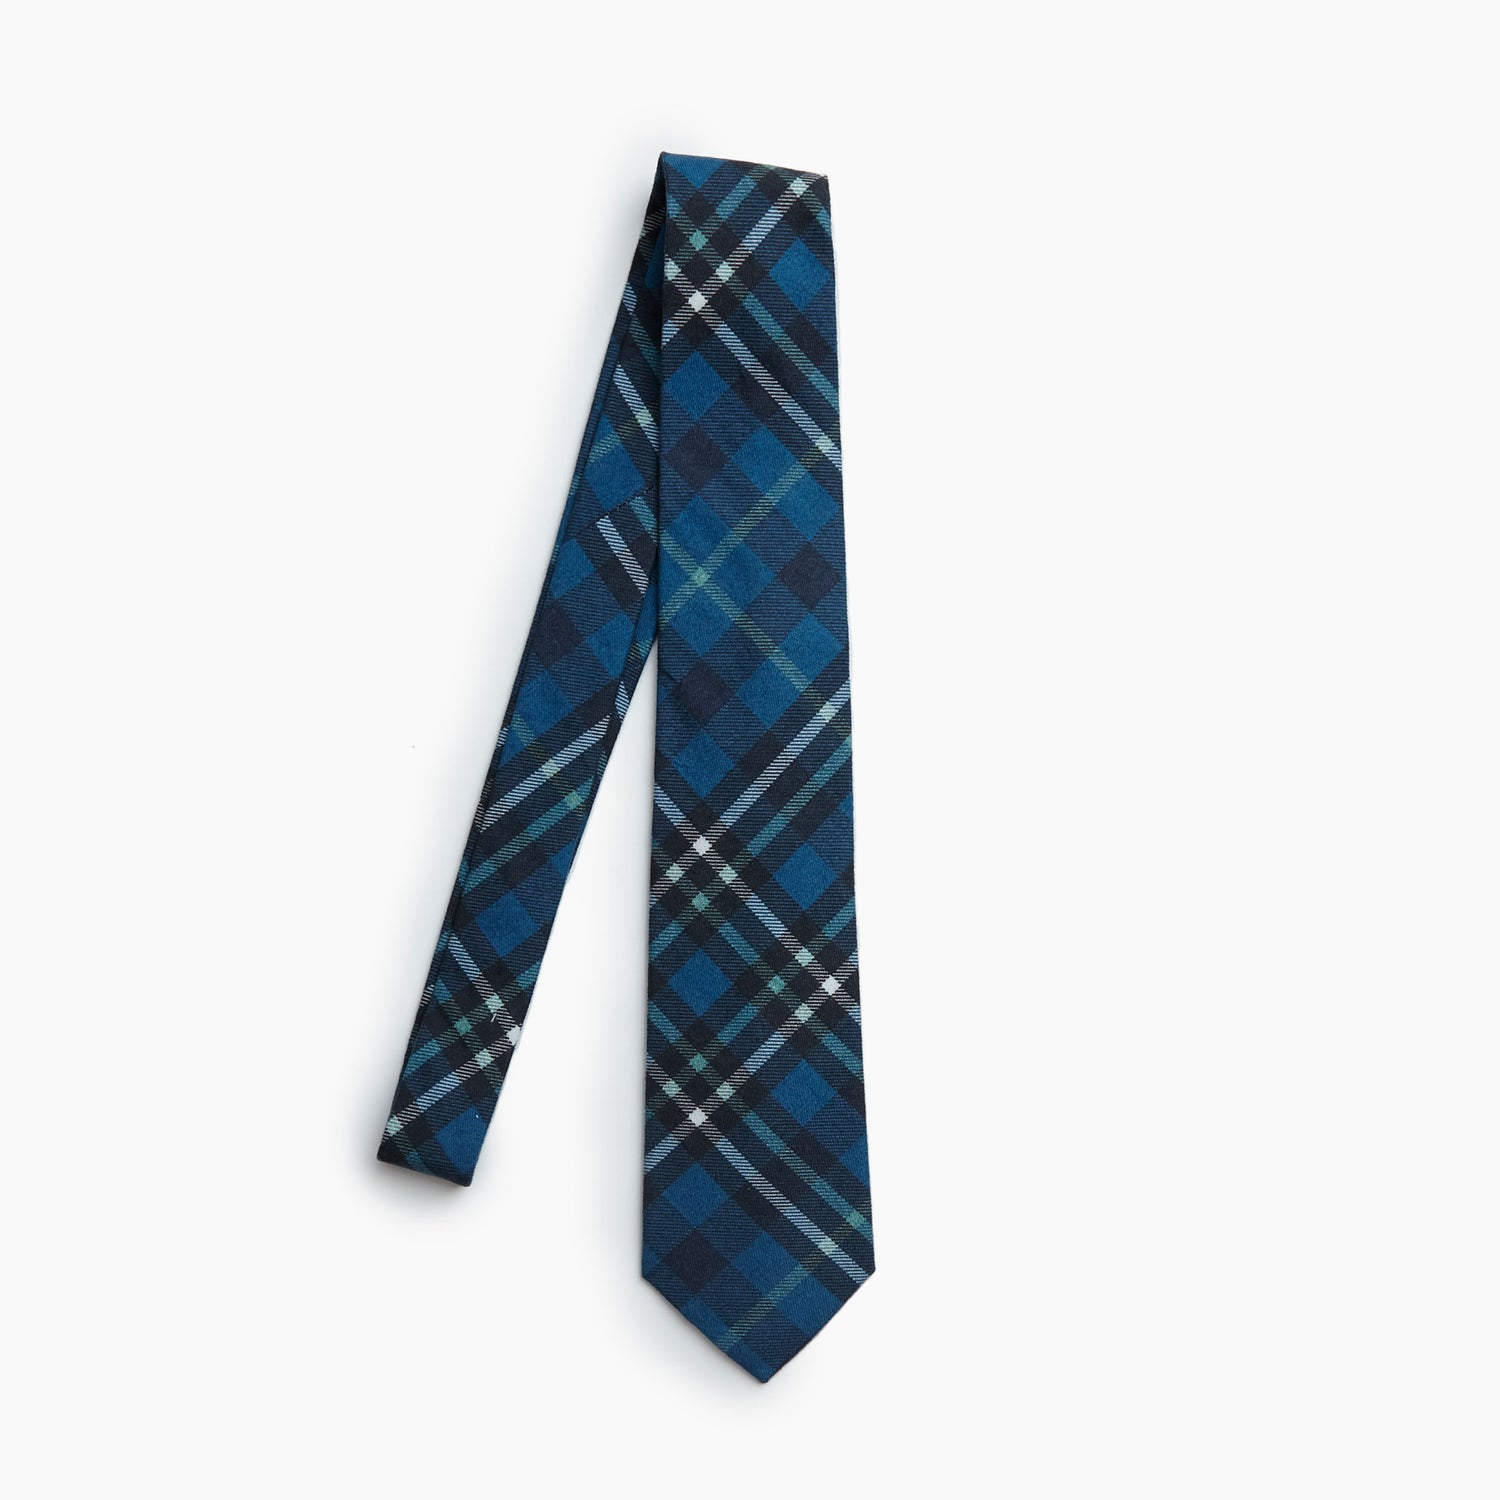 The Grandpa Fishermans Vintage Flannel Self Tipped Tie